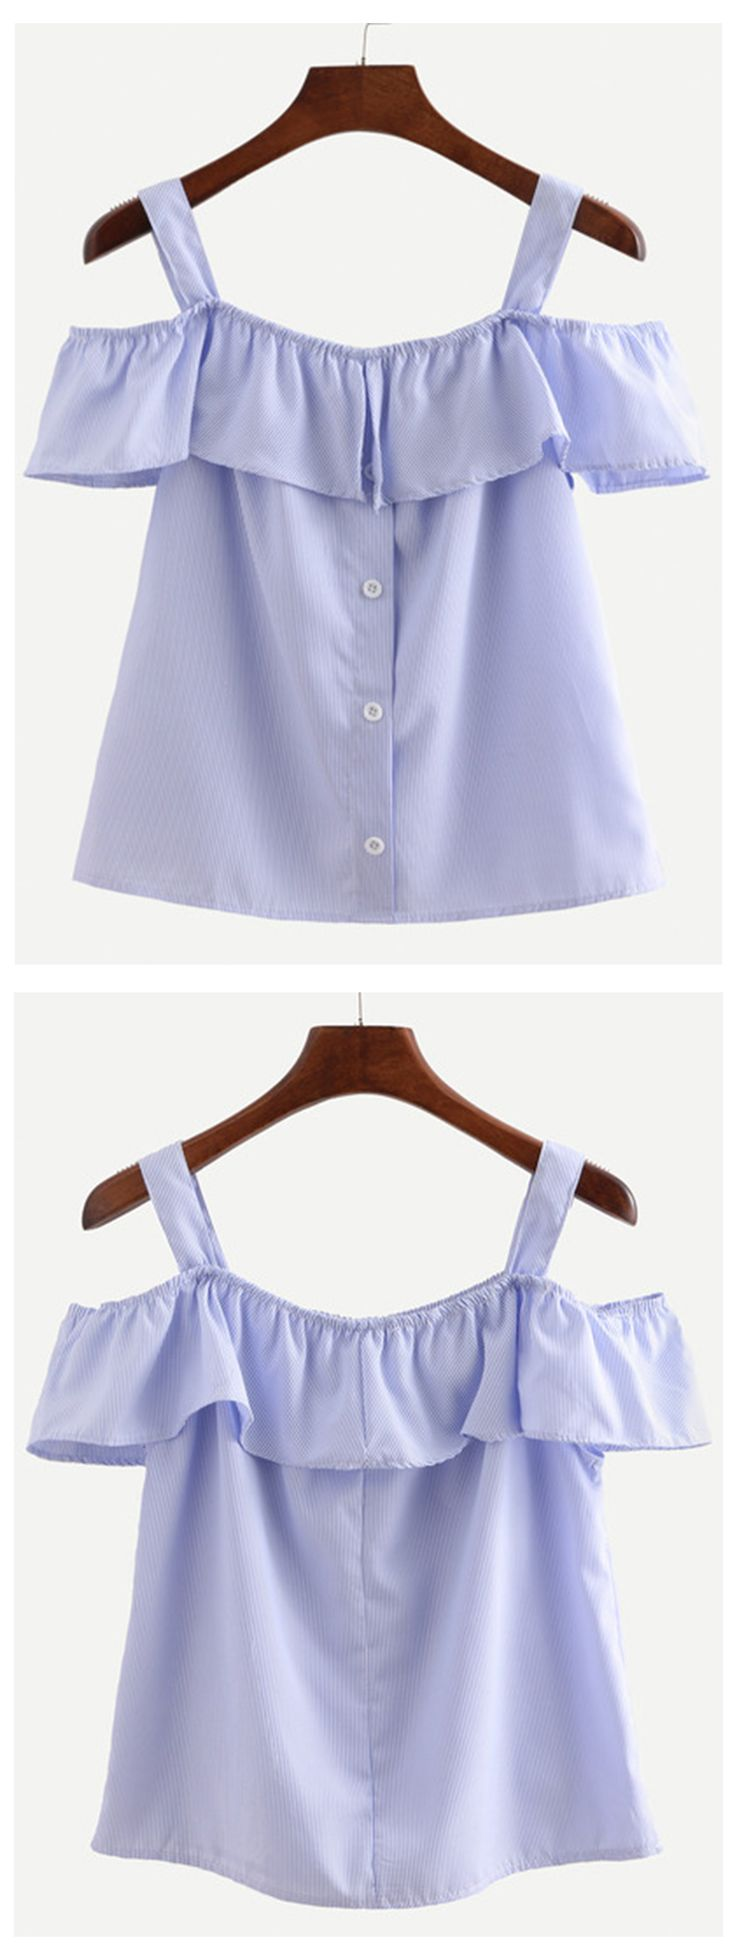 Blue Straps Vertical Striped Ruffle Shirt. Cute ruffle peasant blouse trendy this year. Fantastic for summer beach. Also fashion for street casual look!